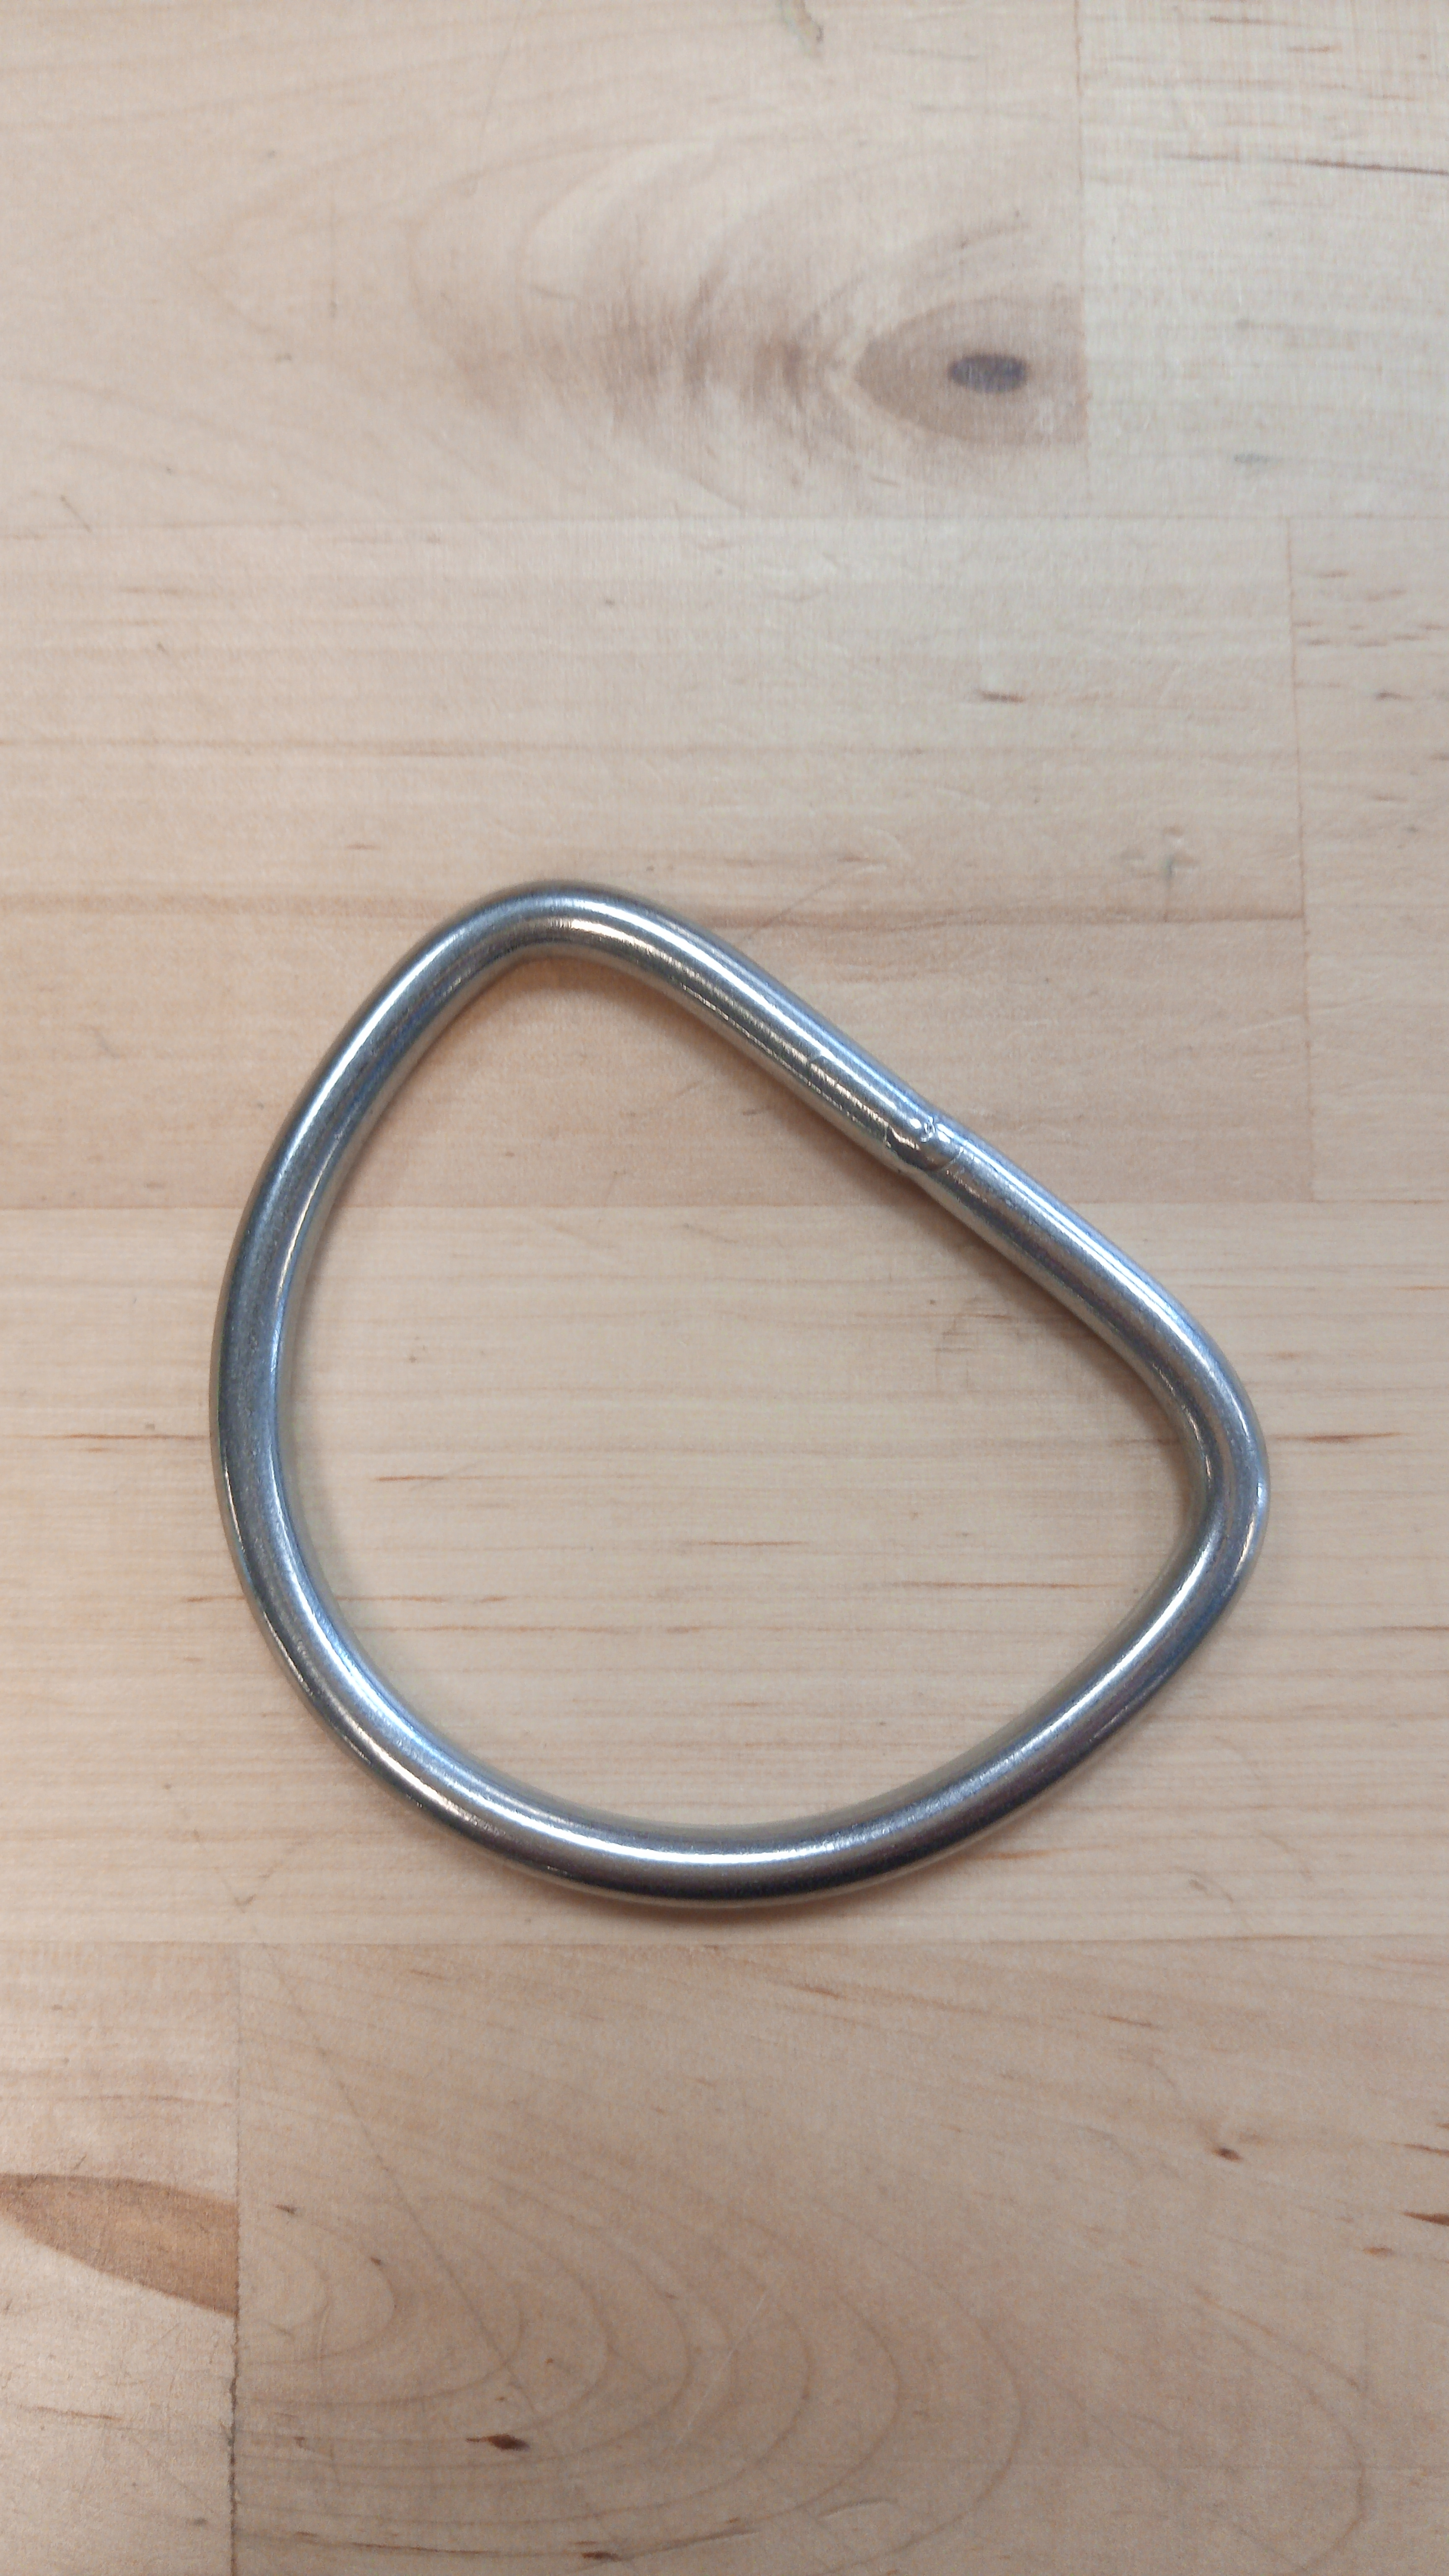 RVS D-ring removable W 60mm x H 50mm